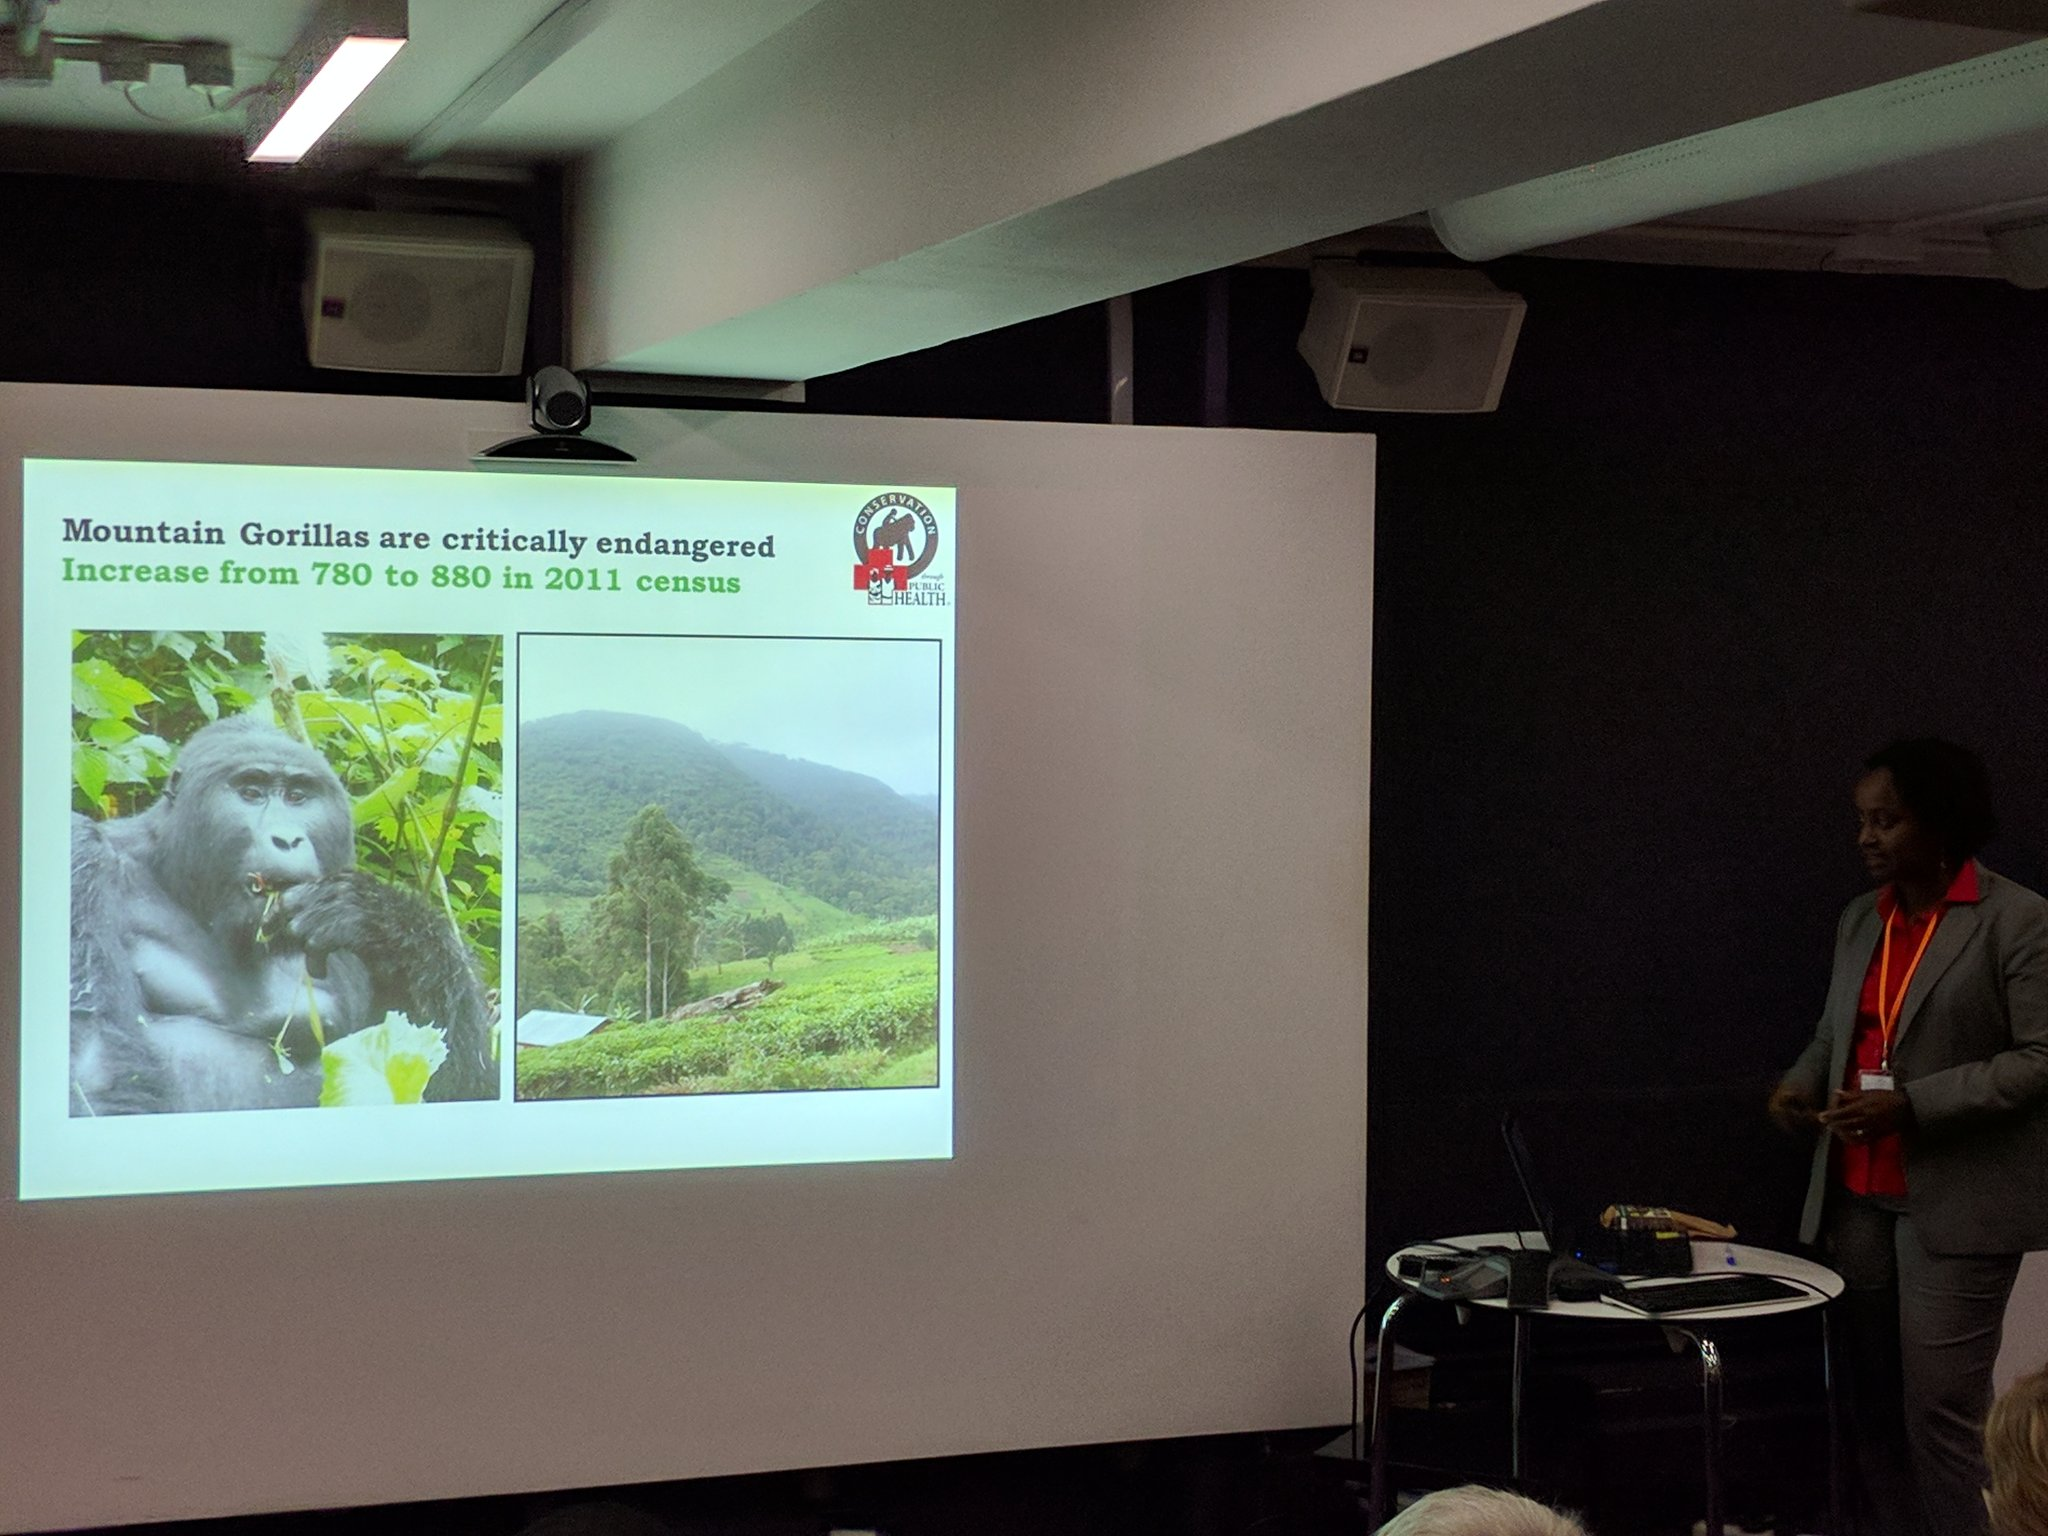 Listening to @DoctorGladys talk about critically endangered mountain gorillas at #Bwindi National Park in Uganda. https://t.co/EXJiOVwXP7